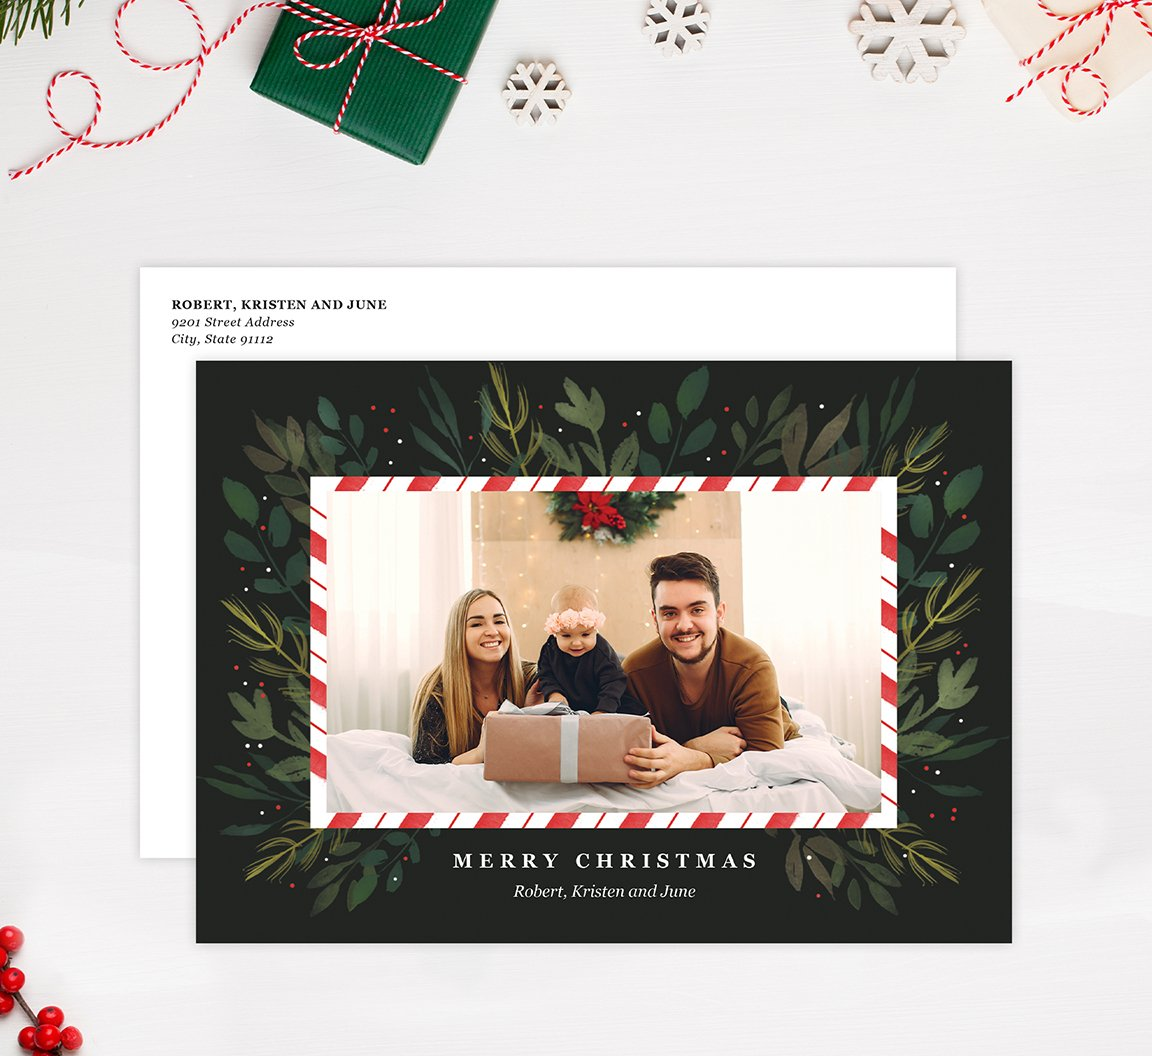 Candy Cane Frame Holiday Card Mockup; Holiday card with envelope and return address printed on it.